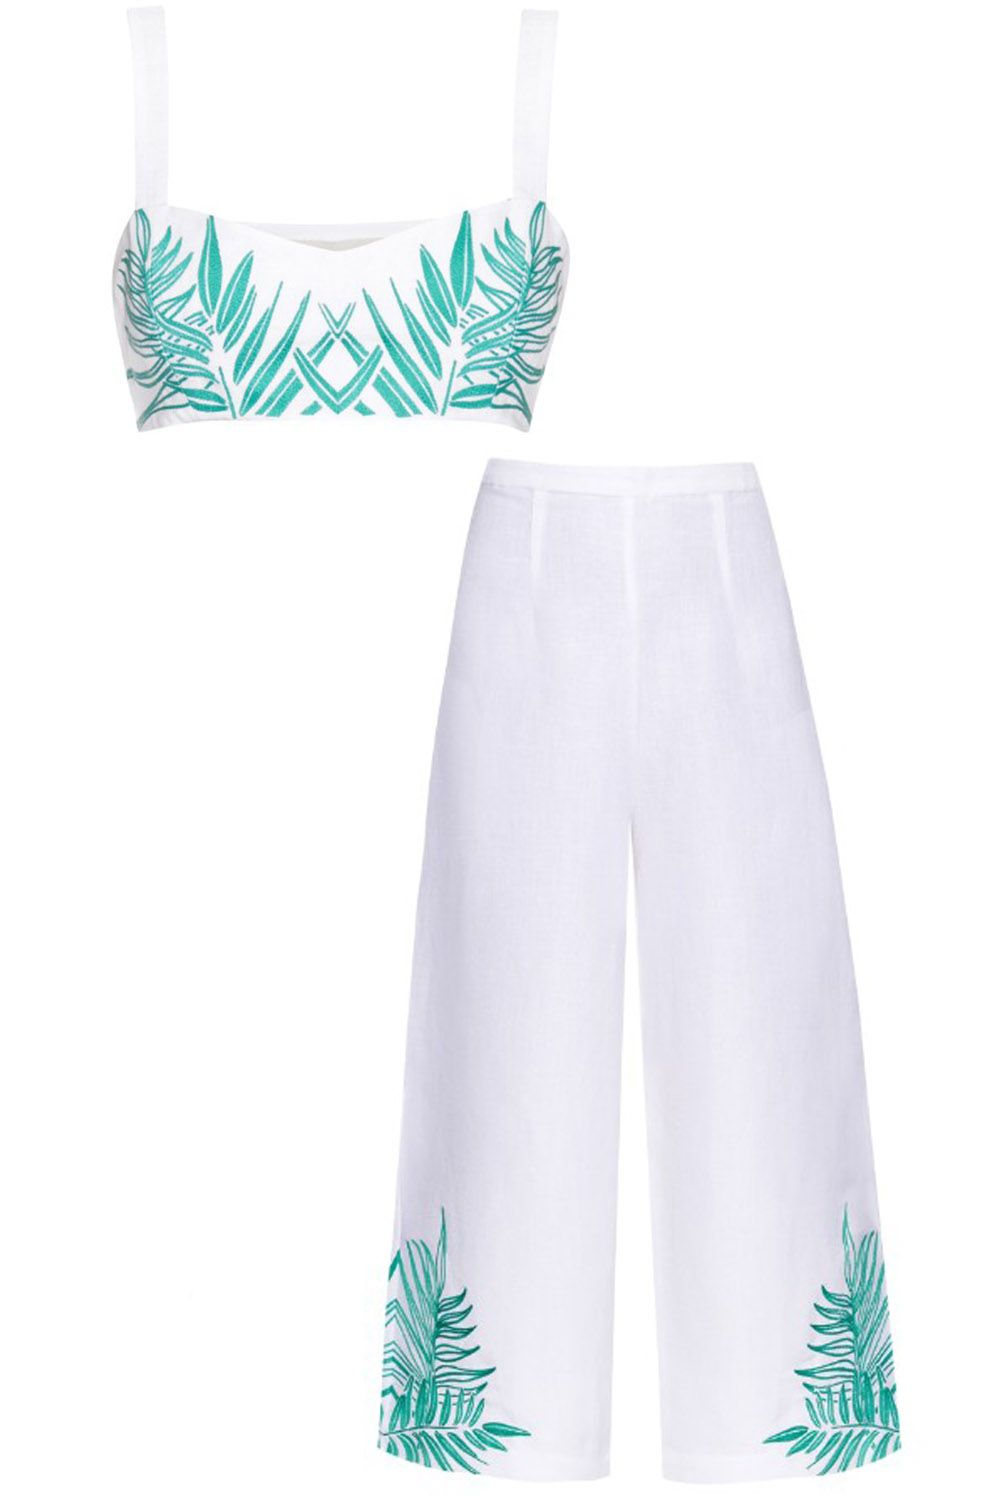 "<p><strong>Mara Hoffman</strong> <a href=""http://www.matchesfashion.com/us/products/Mara-Hoffman-Palm-embroidered-cropped-top-1052869"" target=""_blank"">crop top</a>, $212, and culottes, $365, <a href=""http://www.matchesfashion.com/us/products/Mara-Hoffman-Palm-embroidered-linen-blend-culottes--1035908"" target=""_blank"">matchesfashion.com</a><a href=""http://www.matchesfashion.com/us/products/Mara-Hoffman-Palm-embroidered-linen-blend-culottes--1035908""></a>.</p>"